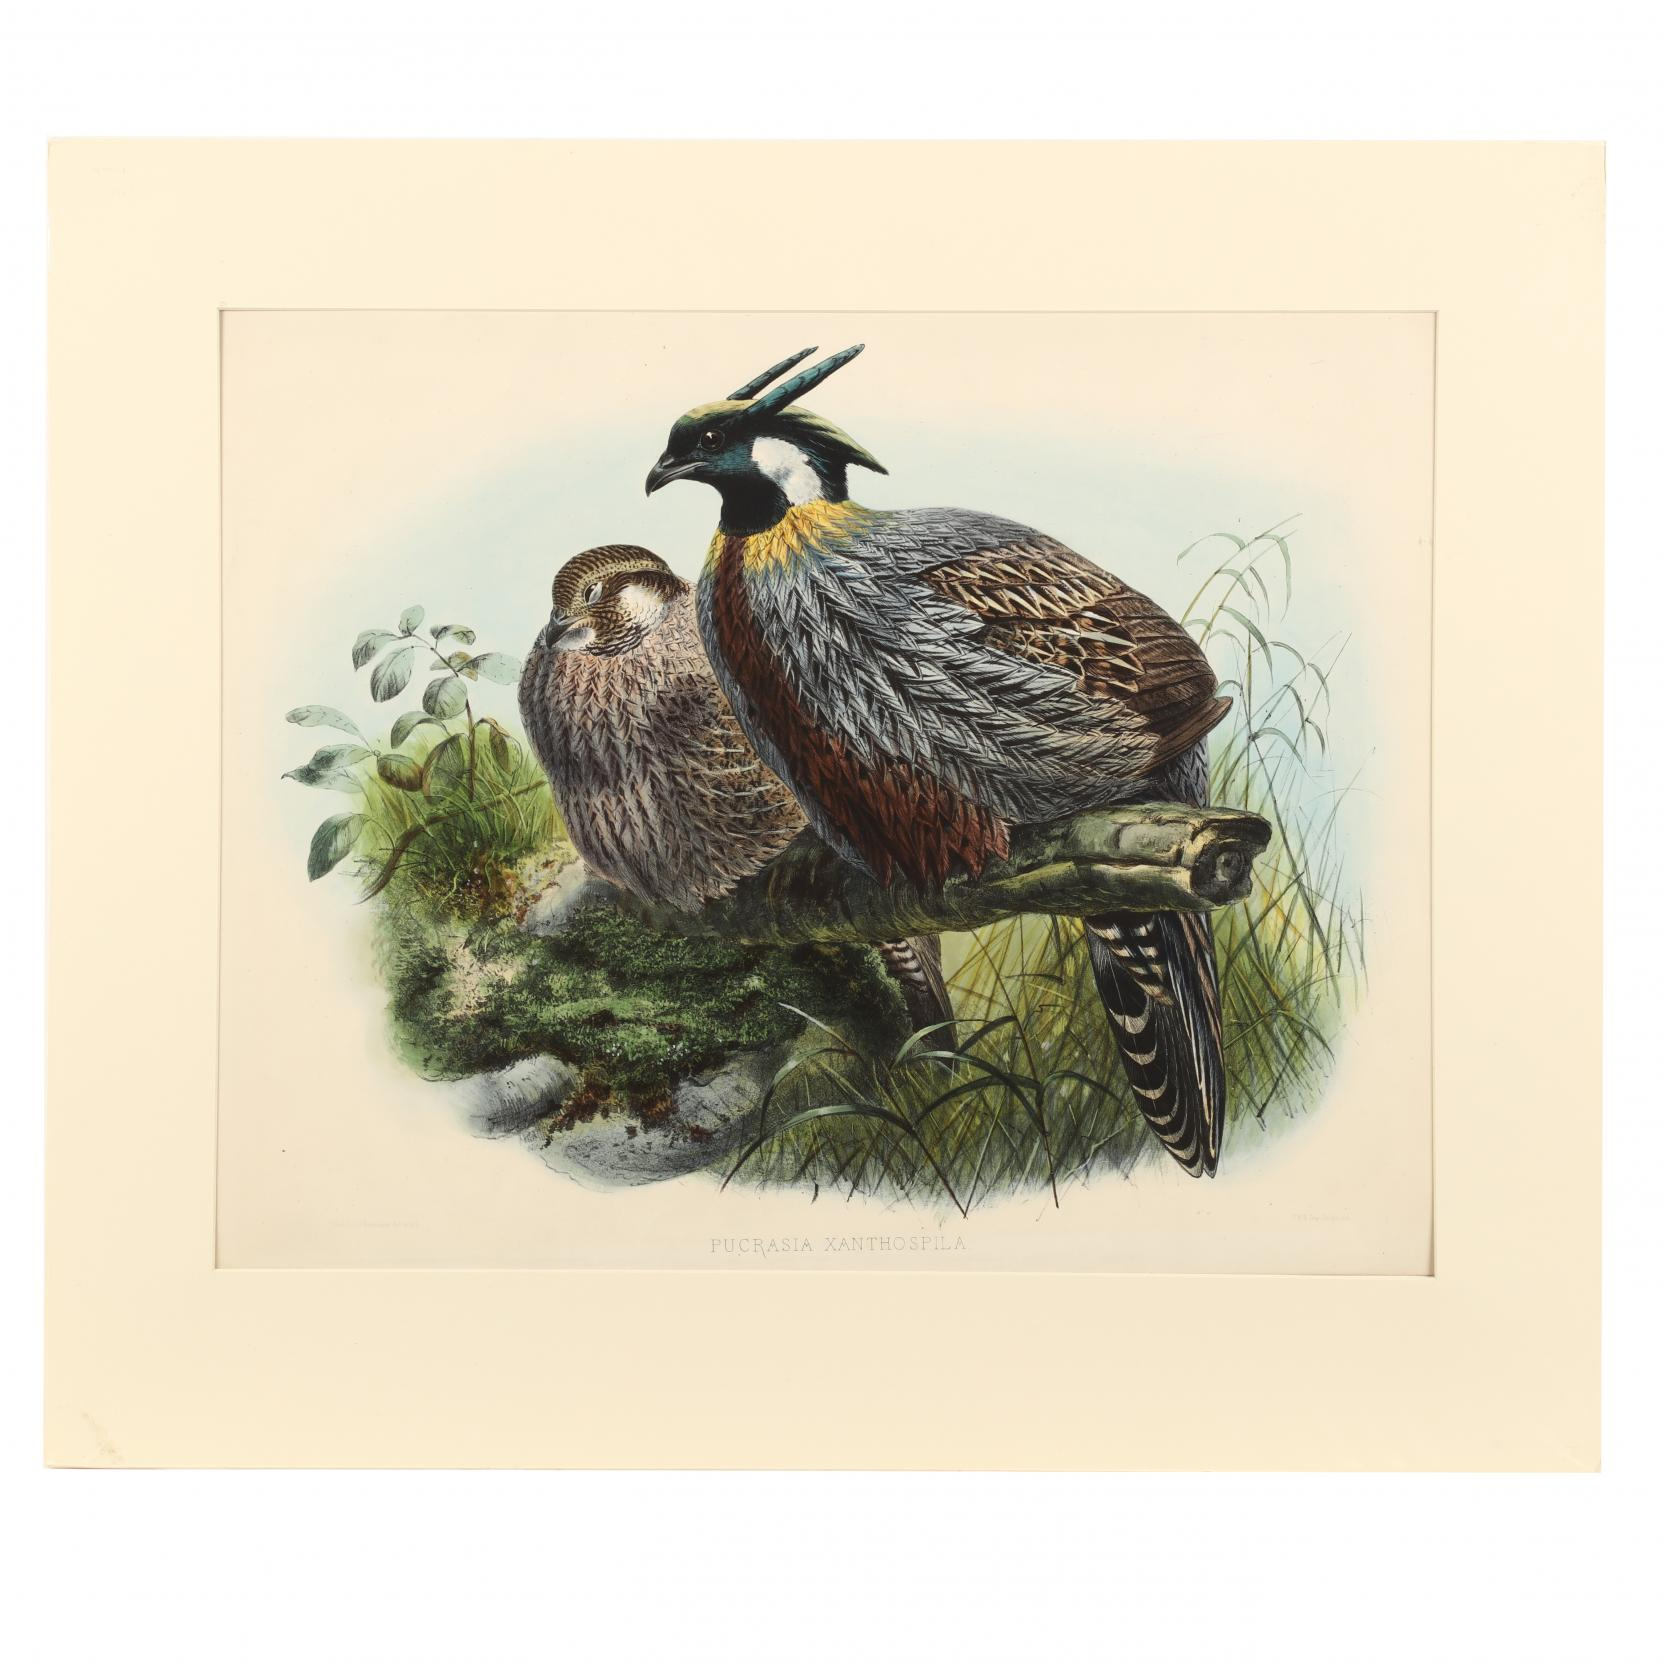 after-joseph-wolf-by-j-g-keulemans-19th-century-pucrasia-xanthospila-chinese-pucra-pheasant